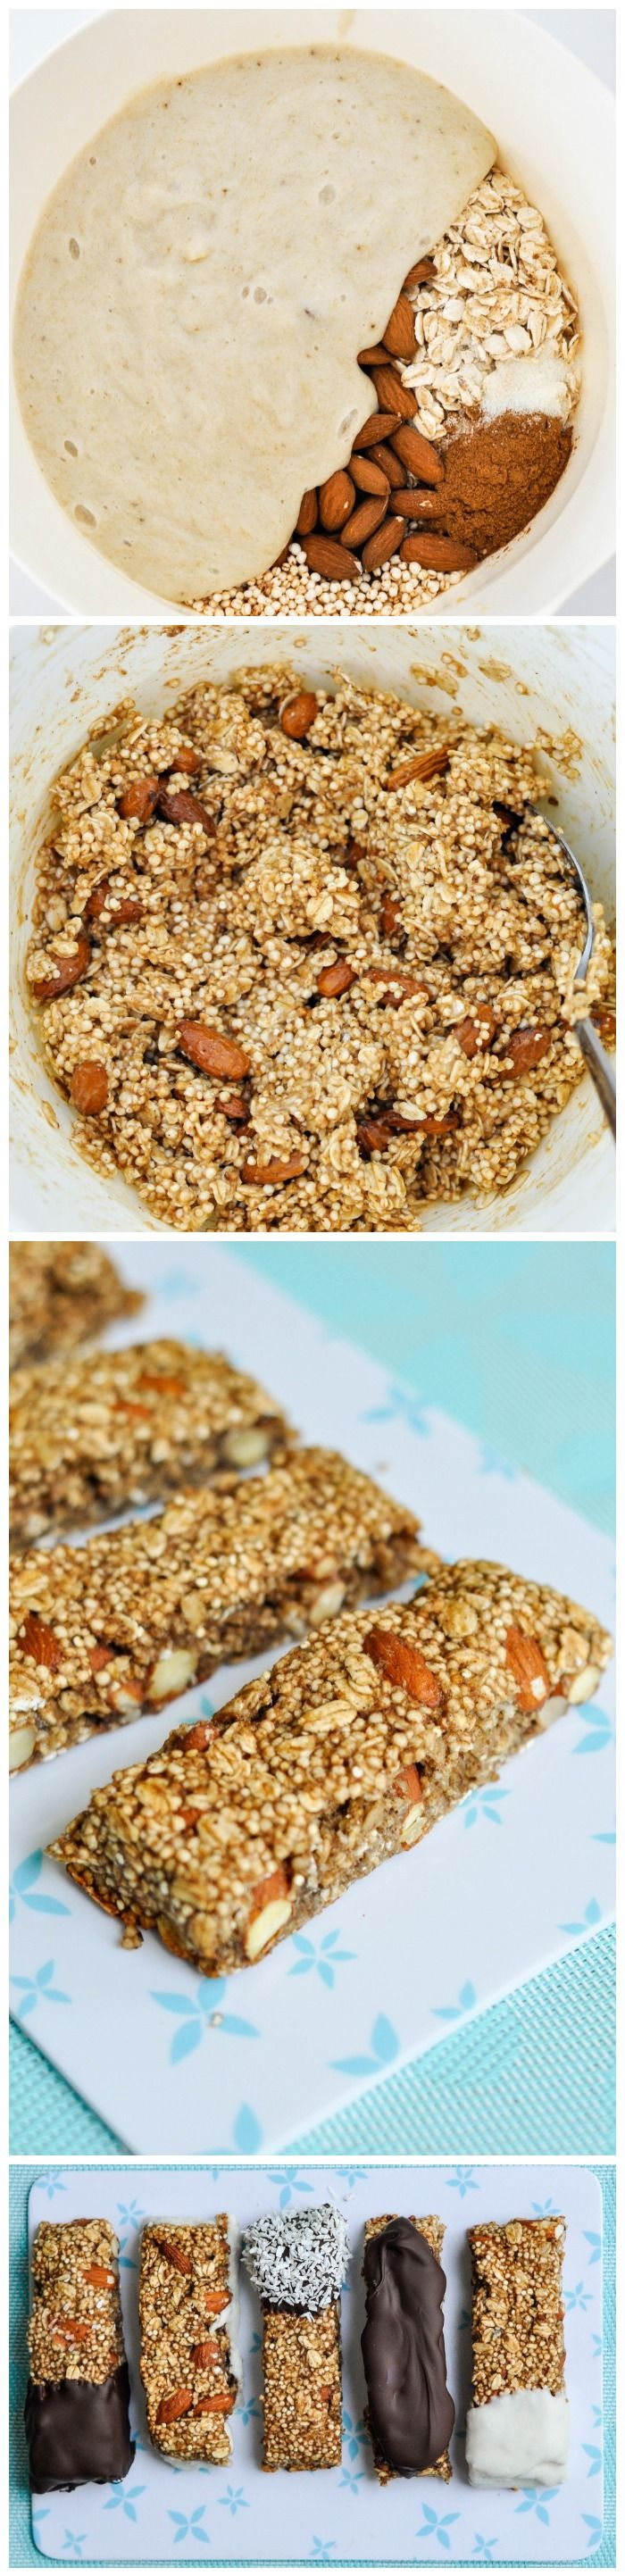 Puffed Quinoa Oat Bars Recipe - Dip in chocolate or melted coconut for a extra special treat! Easily customize this recipe with other ingredients | VeganFamilyRecipes.com